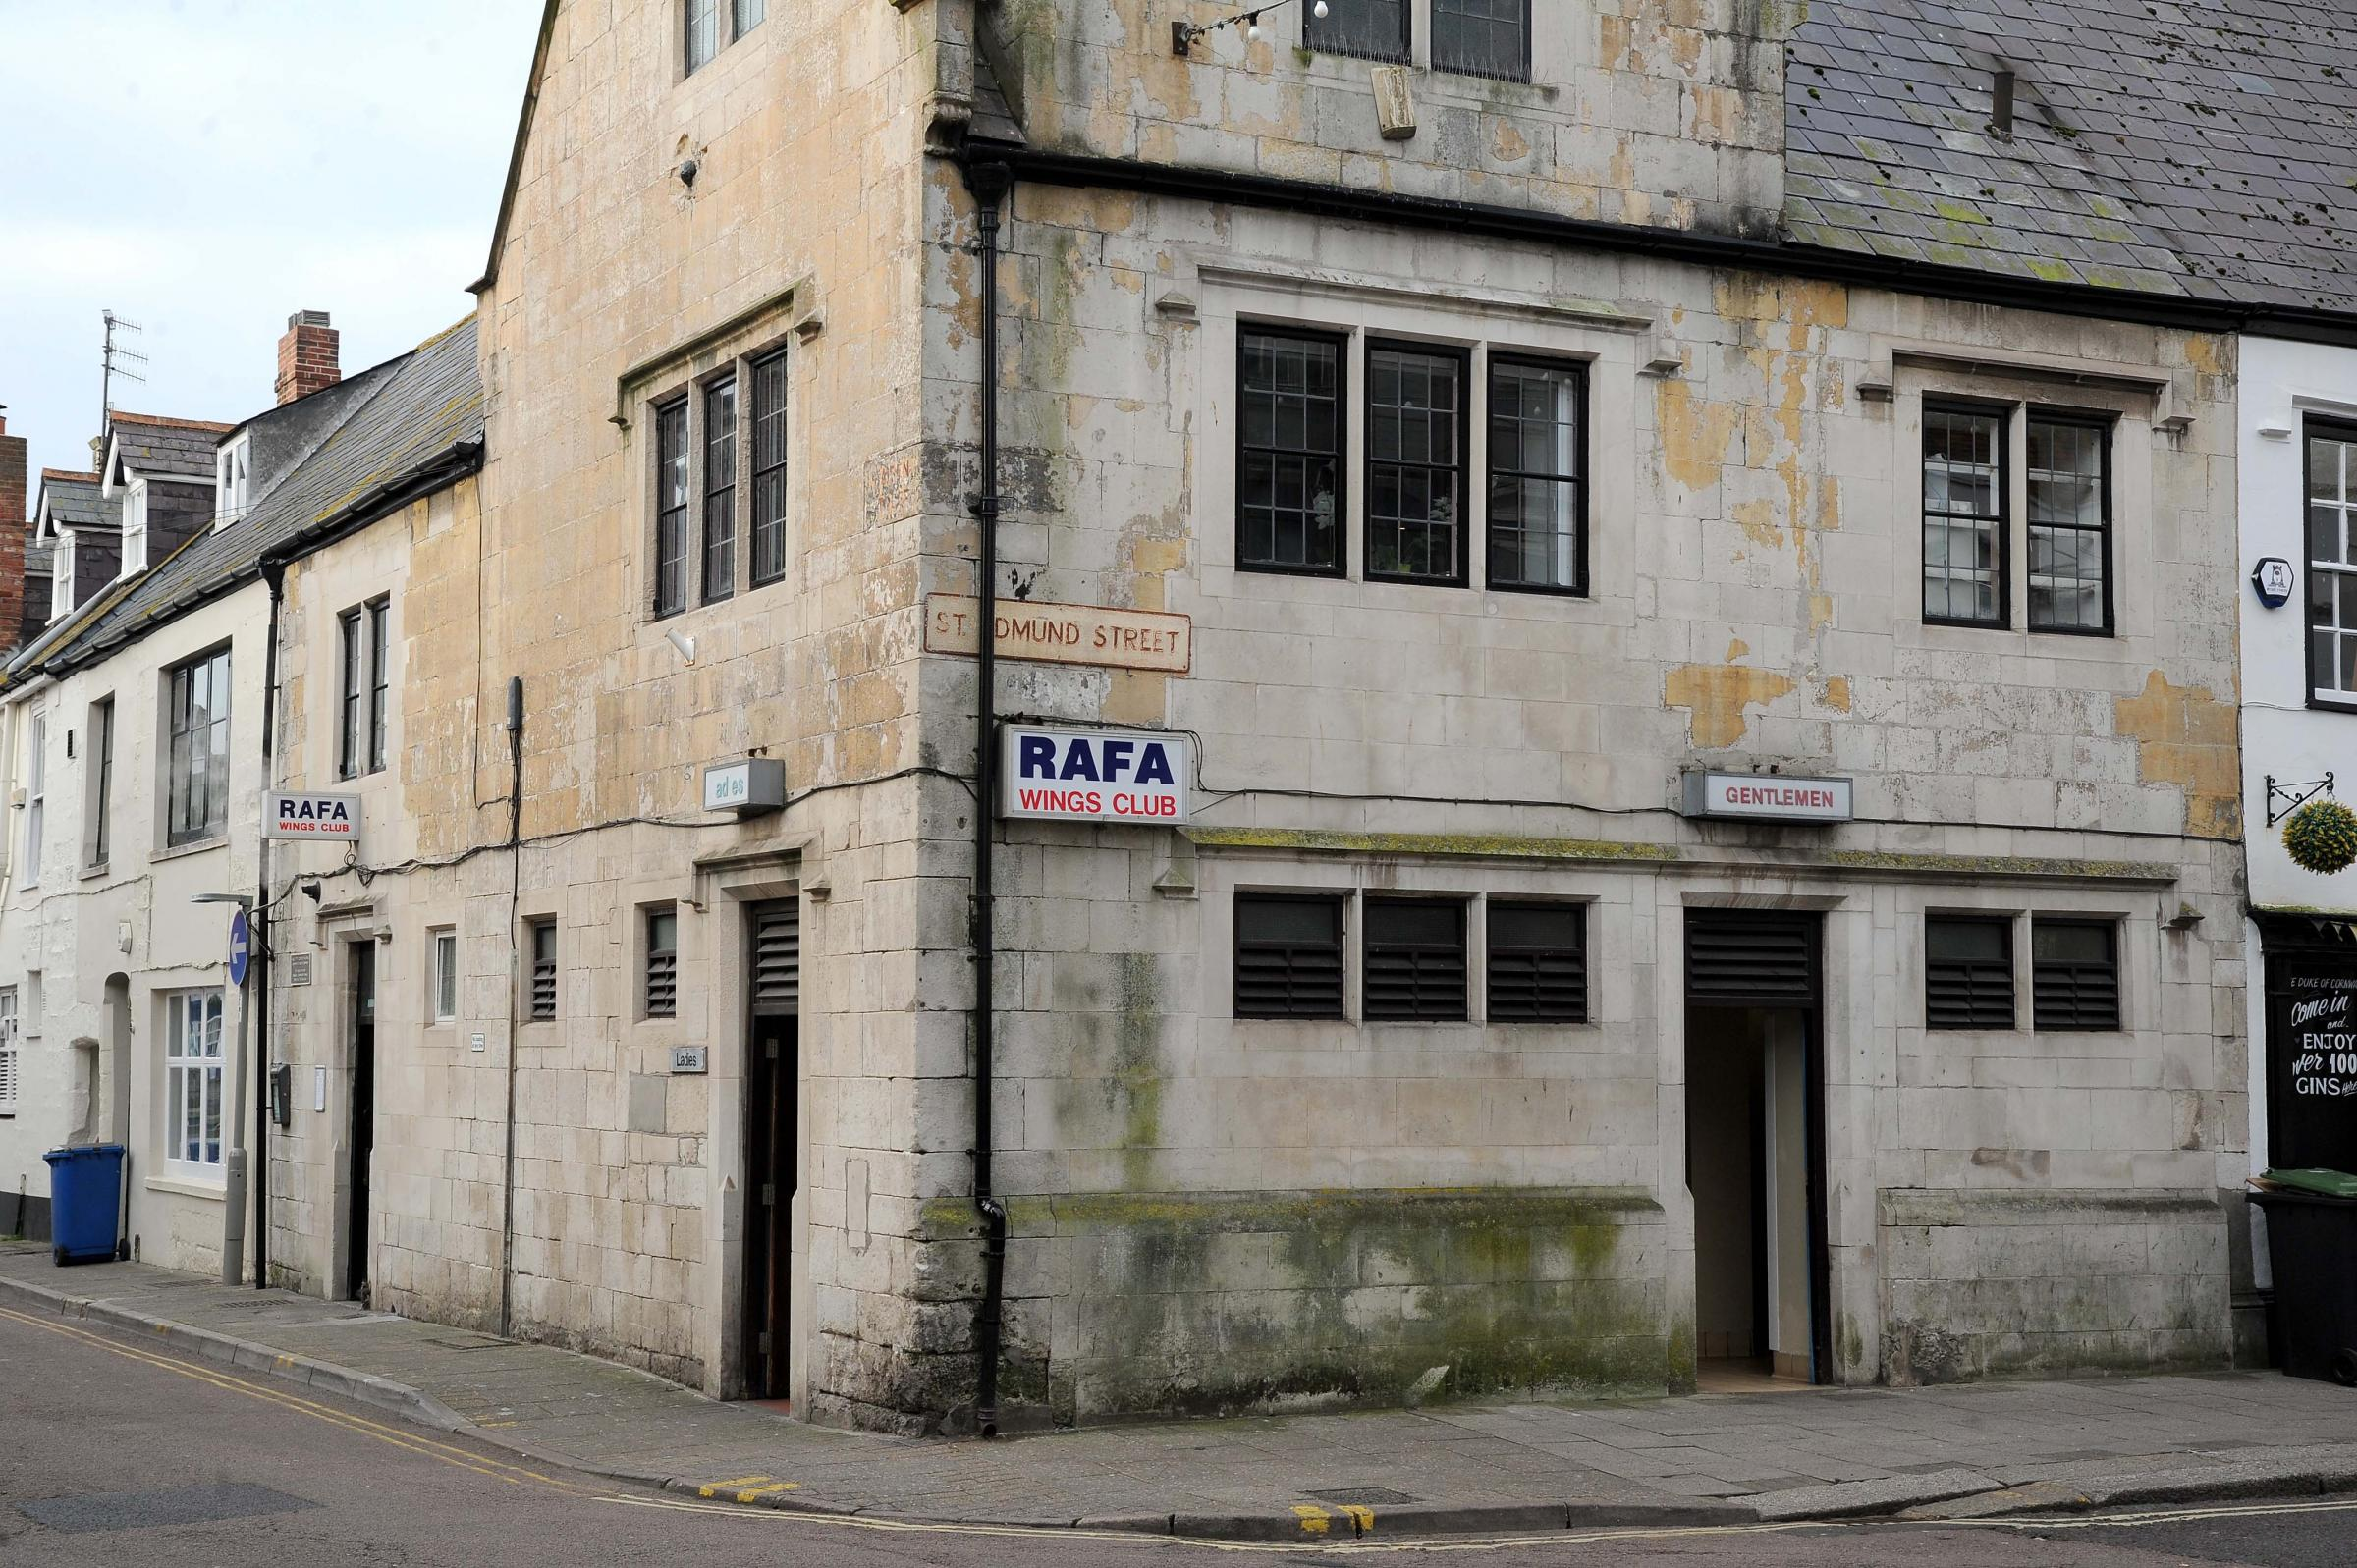 RAFA Wings Club and public toilets, Weymouth, 02/18, PICTURE: FINNBARR WEBSTER/F19509